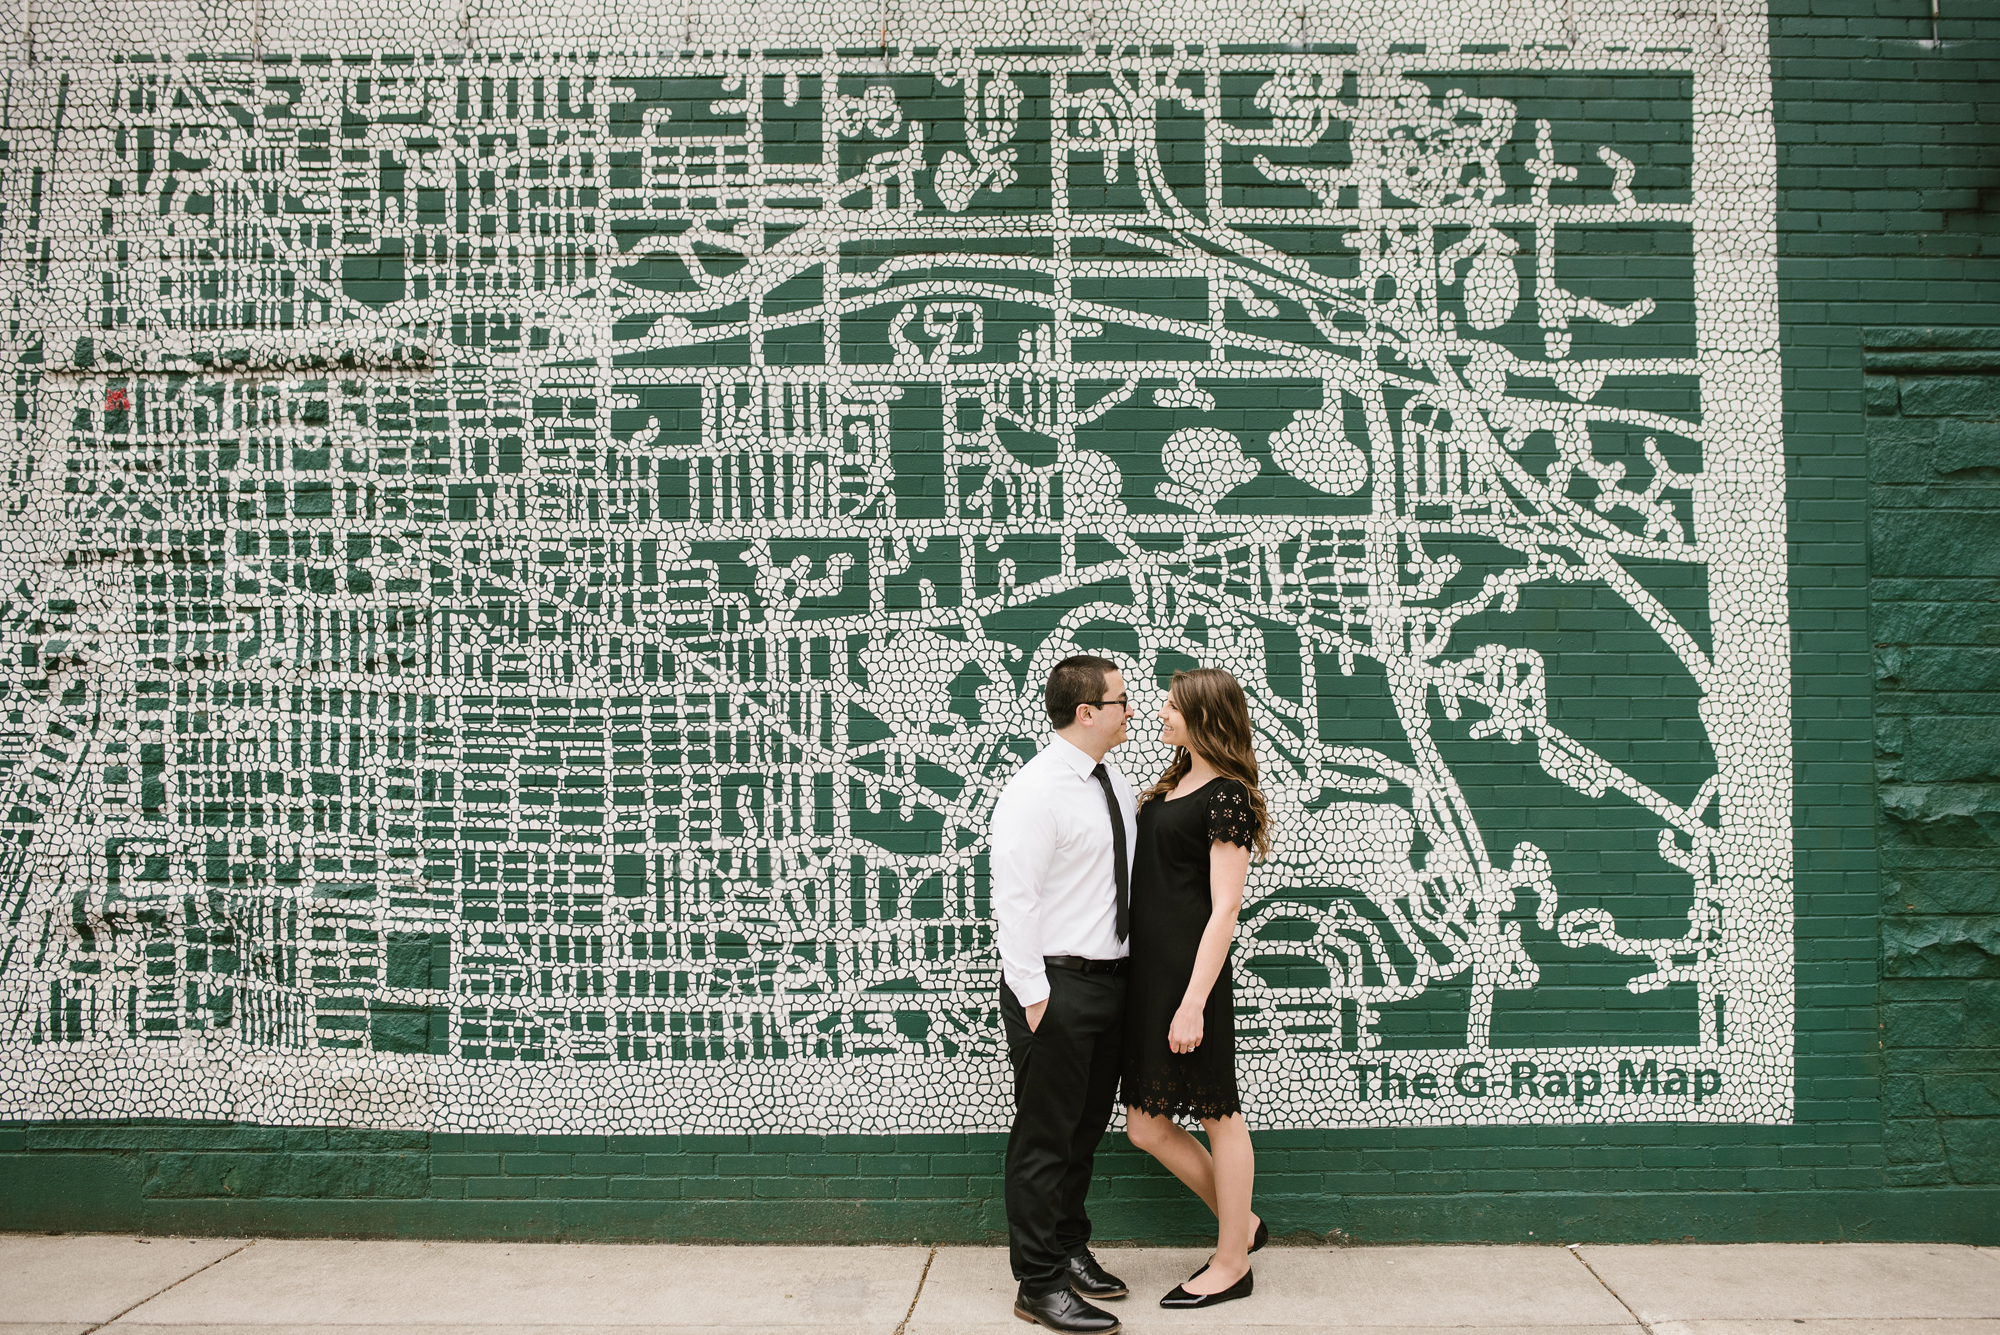 grand-rapids-downtown-spring-engagement-session (4).jpg